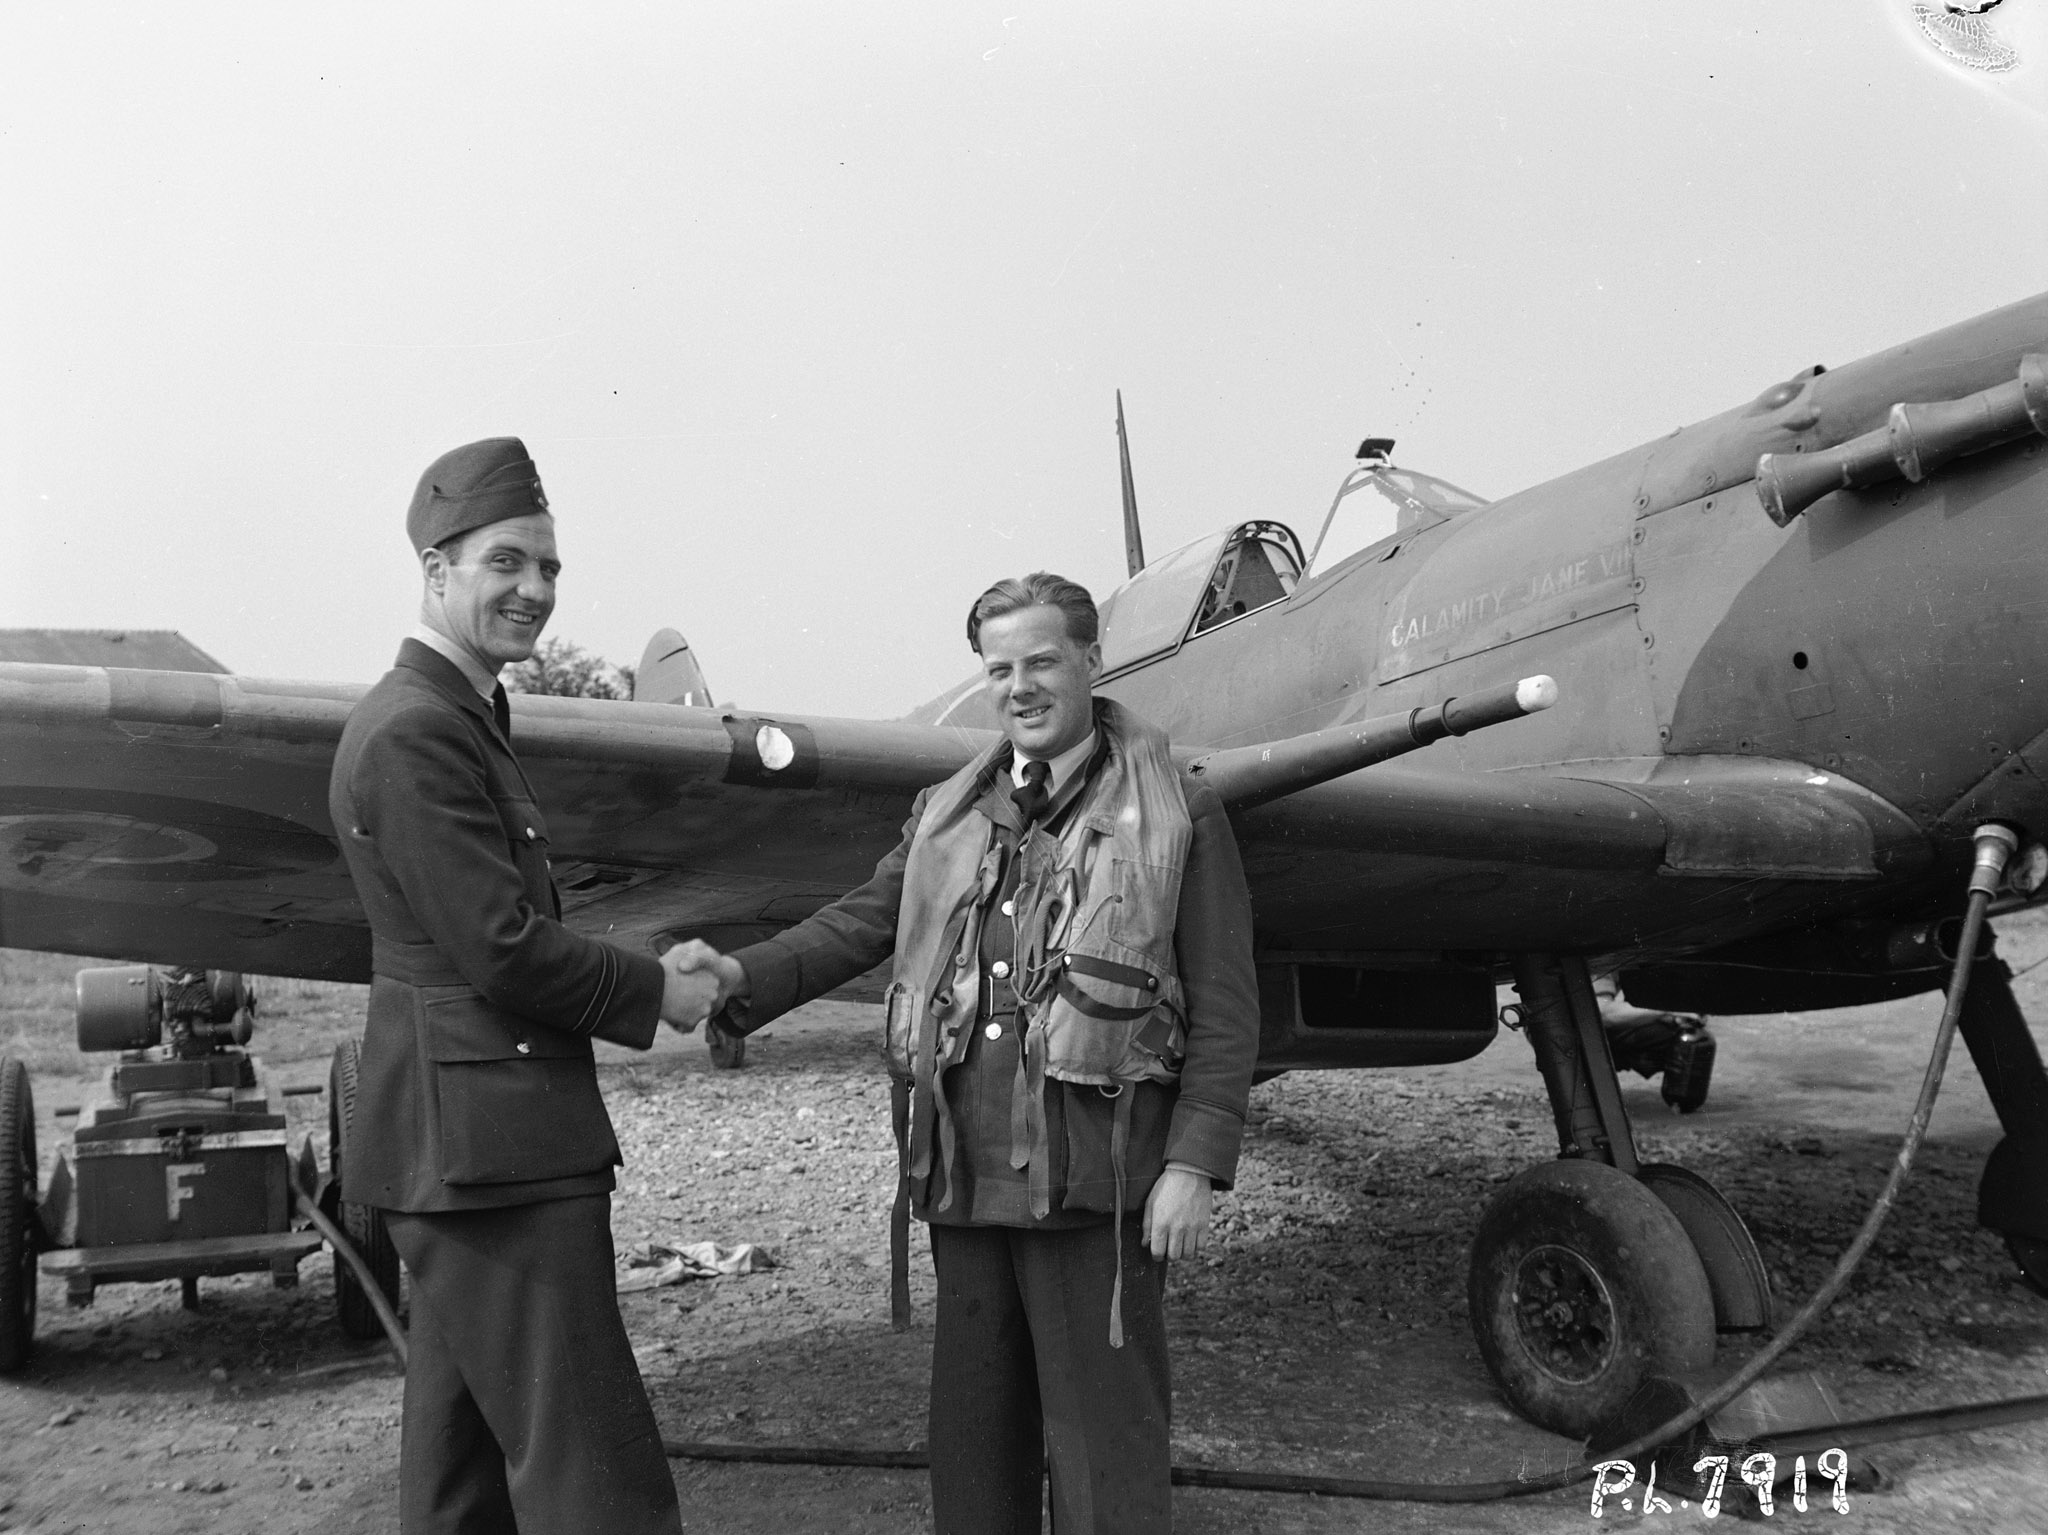 Pilot Officer Paris Richmond Eakins, from Minnedosa, Manitoba, welcomes Flight Lieutenant Philip Valentine King Tripe, from Ottawa, Ontario, to 411 Squadron in June 1942. PHOTO: DND Archives, PL-7919